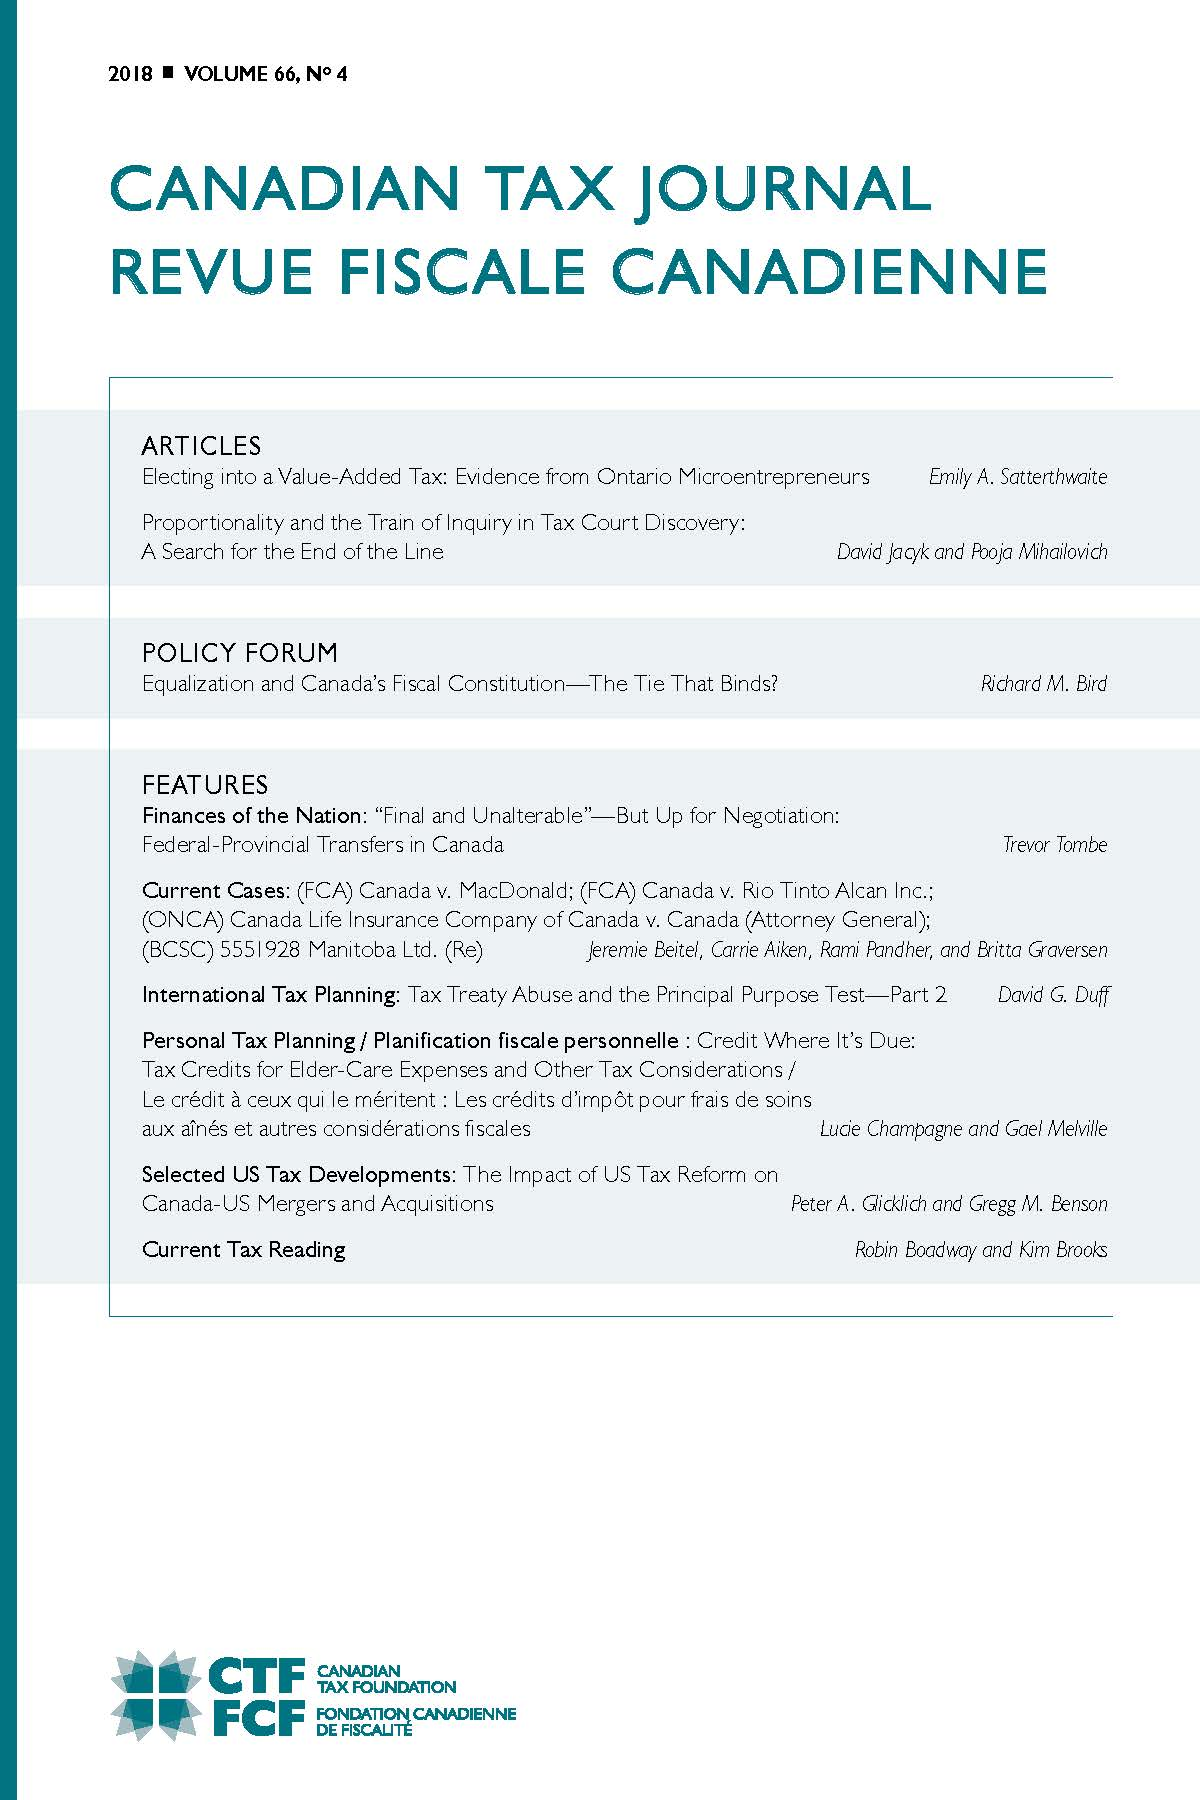 Canadian Tax Journal Volume 66, No. 4